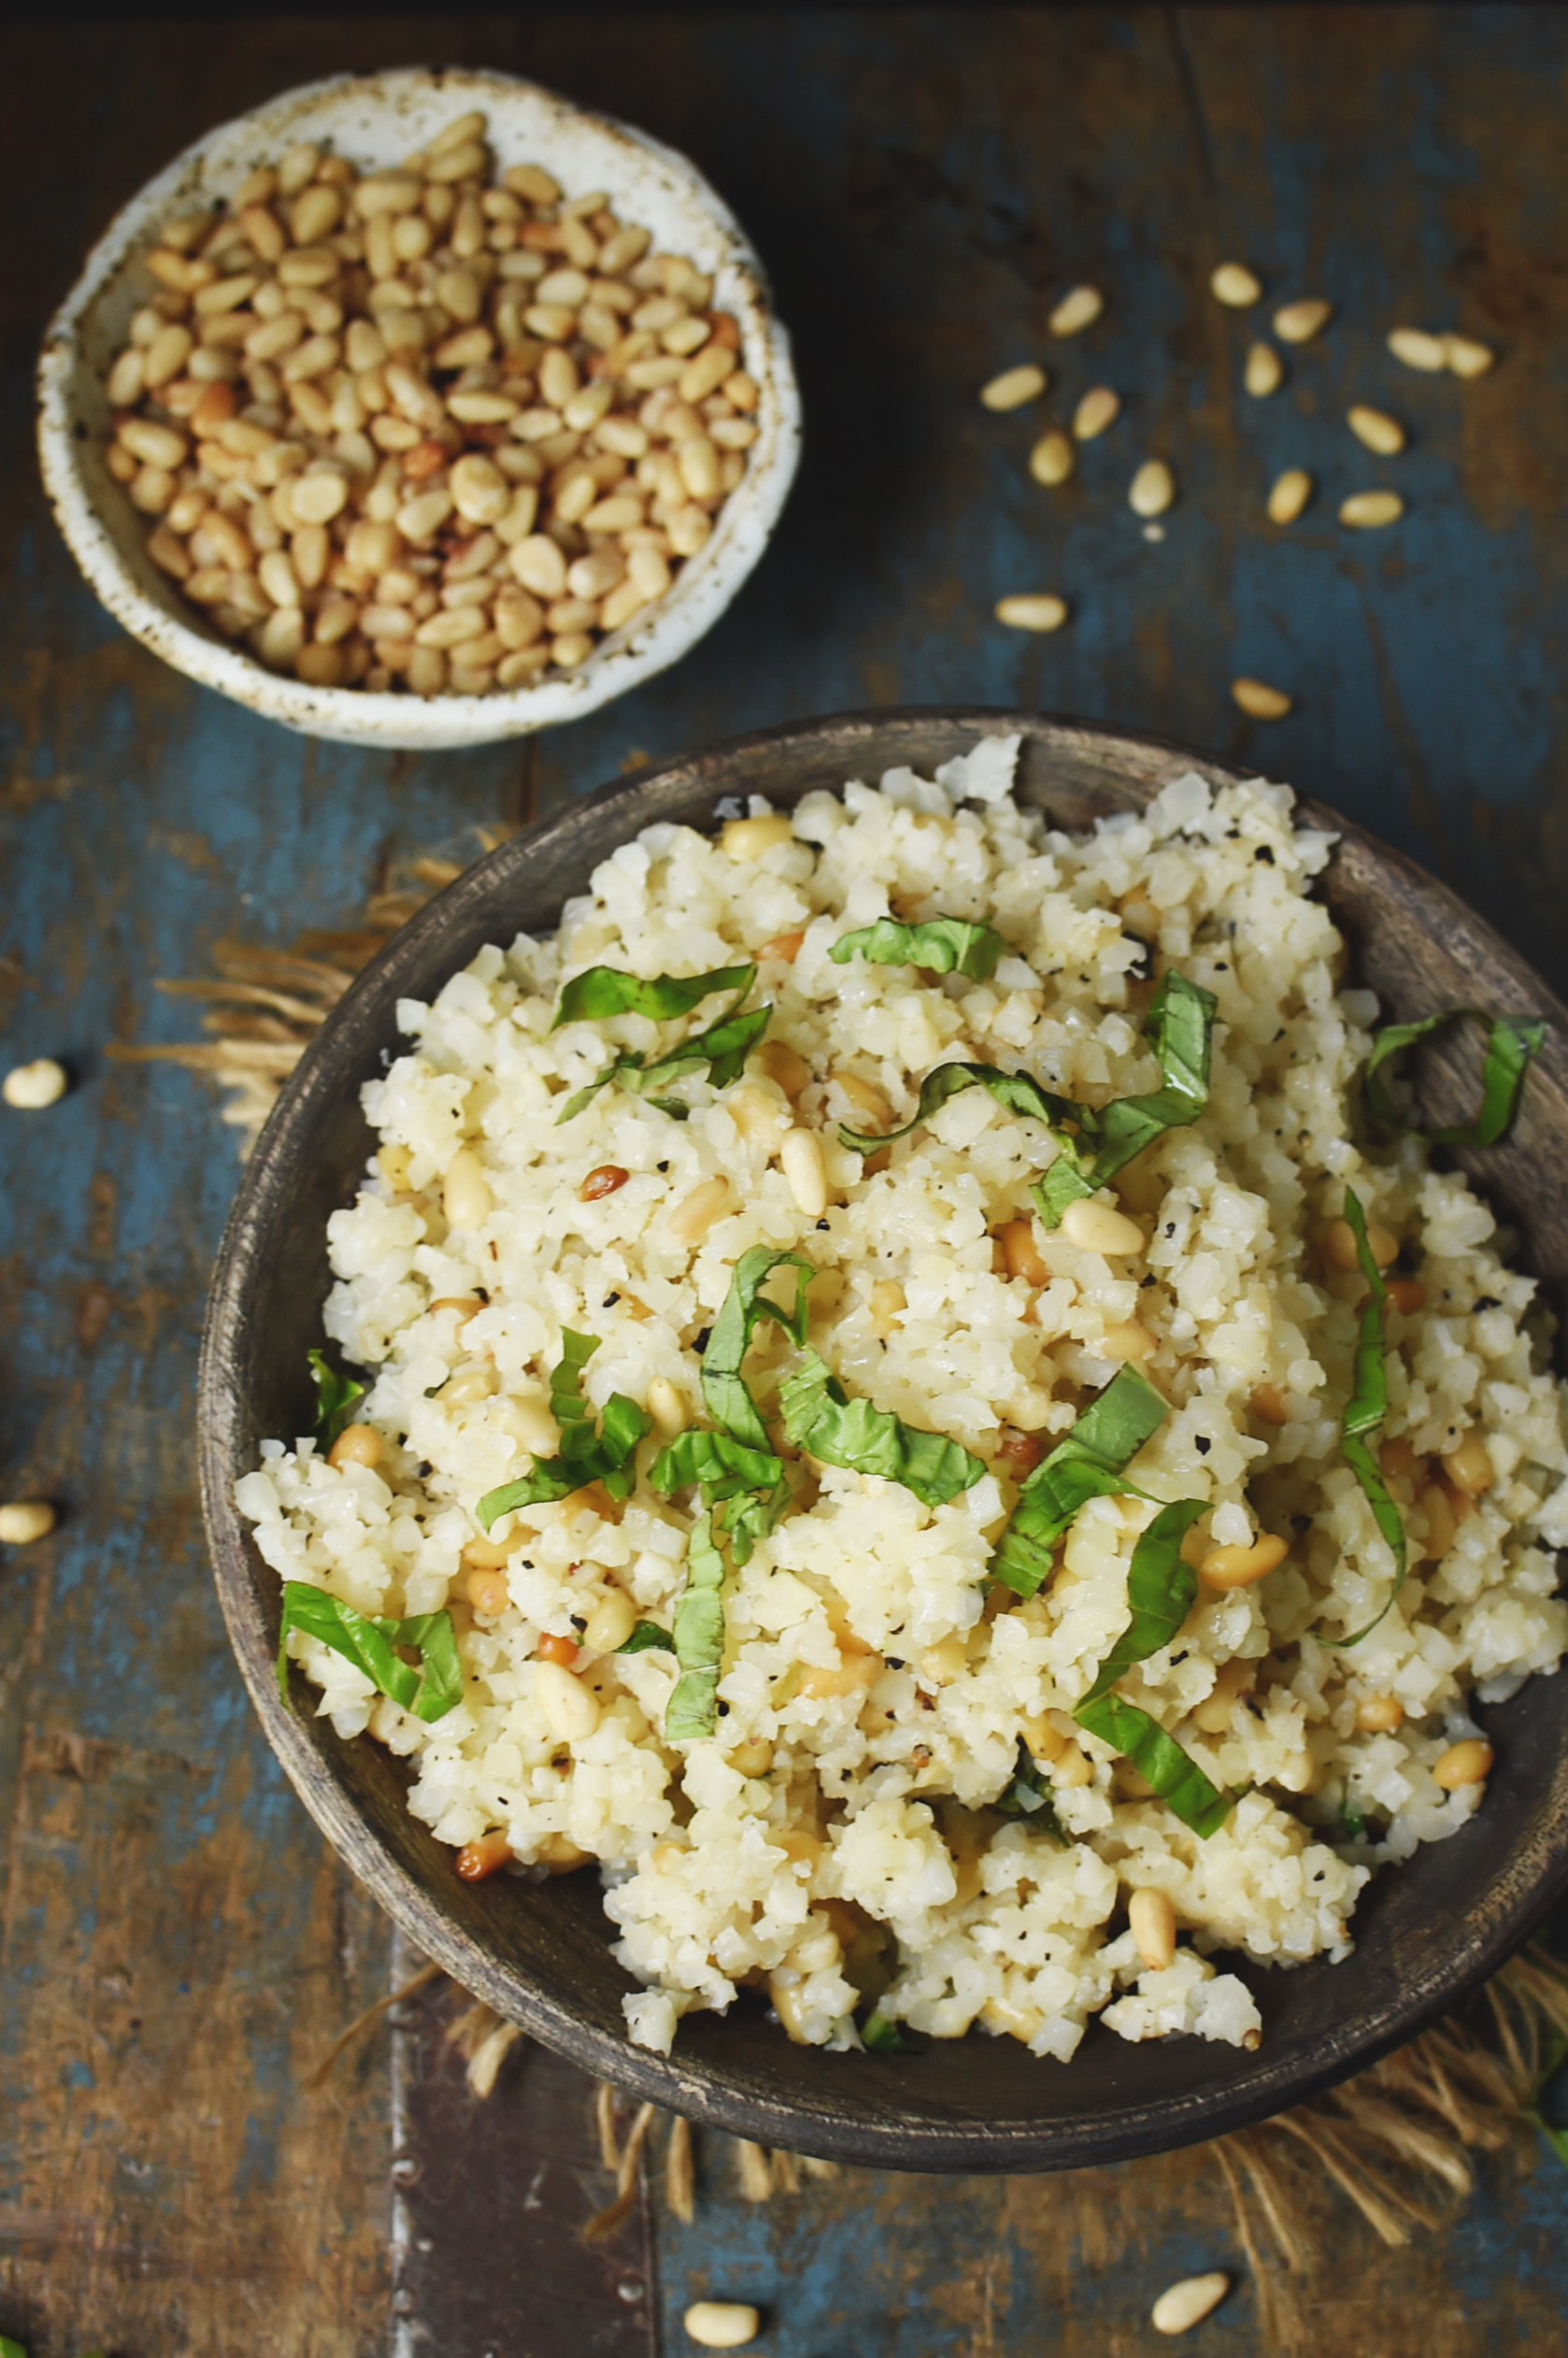 Cauliflower Rice Pilaf Recipe-In a serving bowl